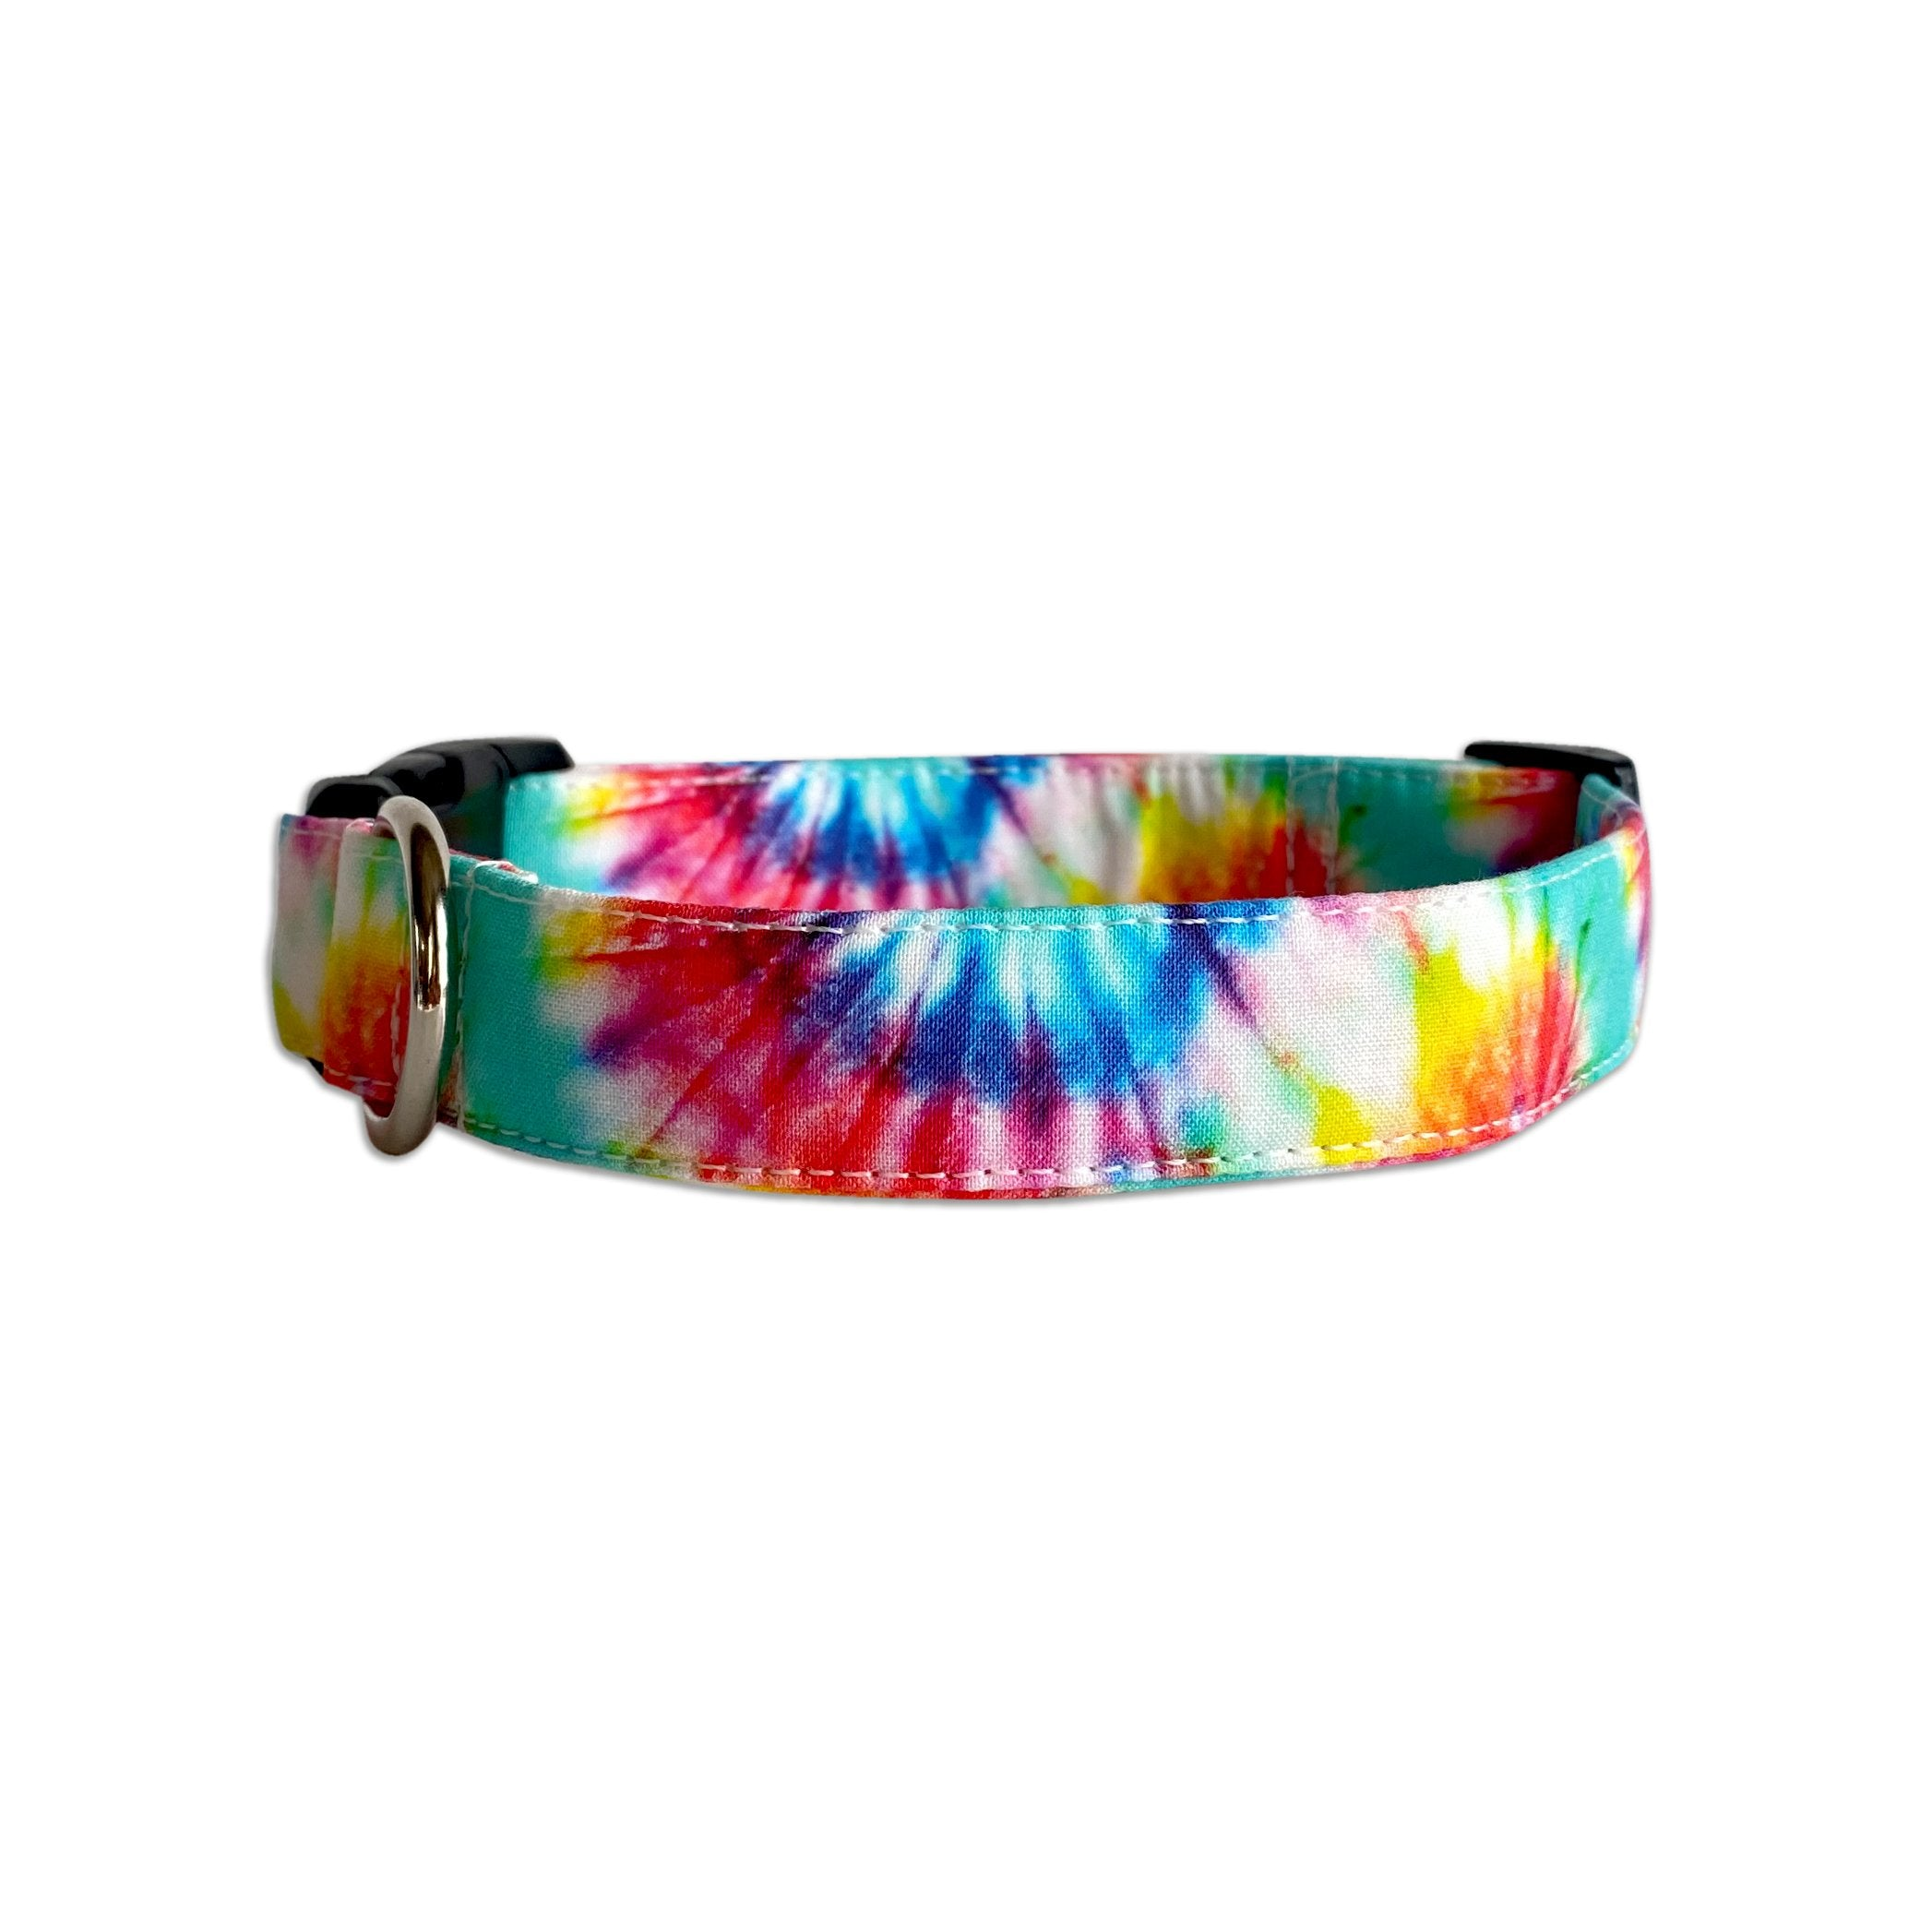 Summer Tie Dye Dog Collar